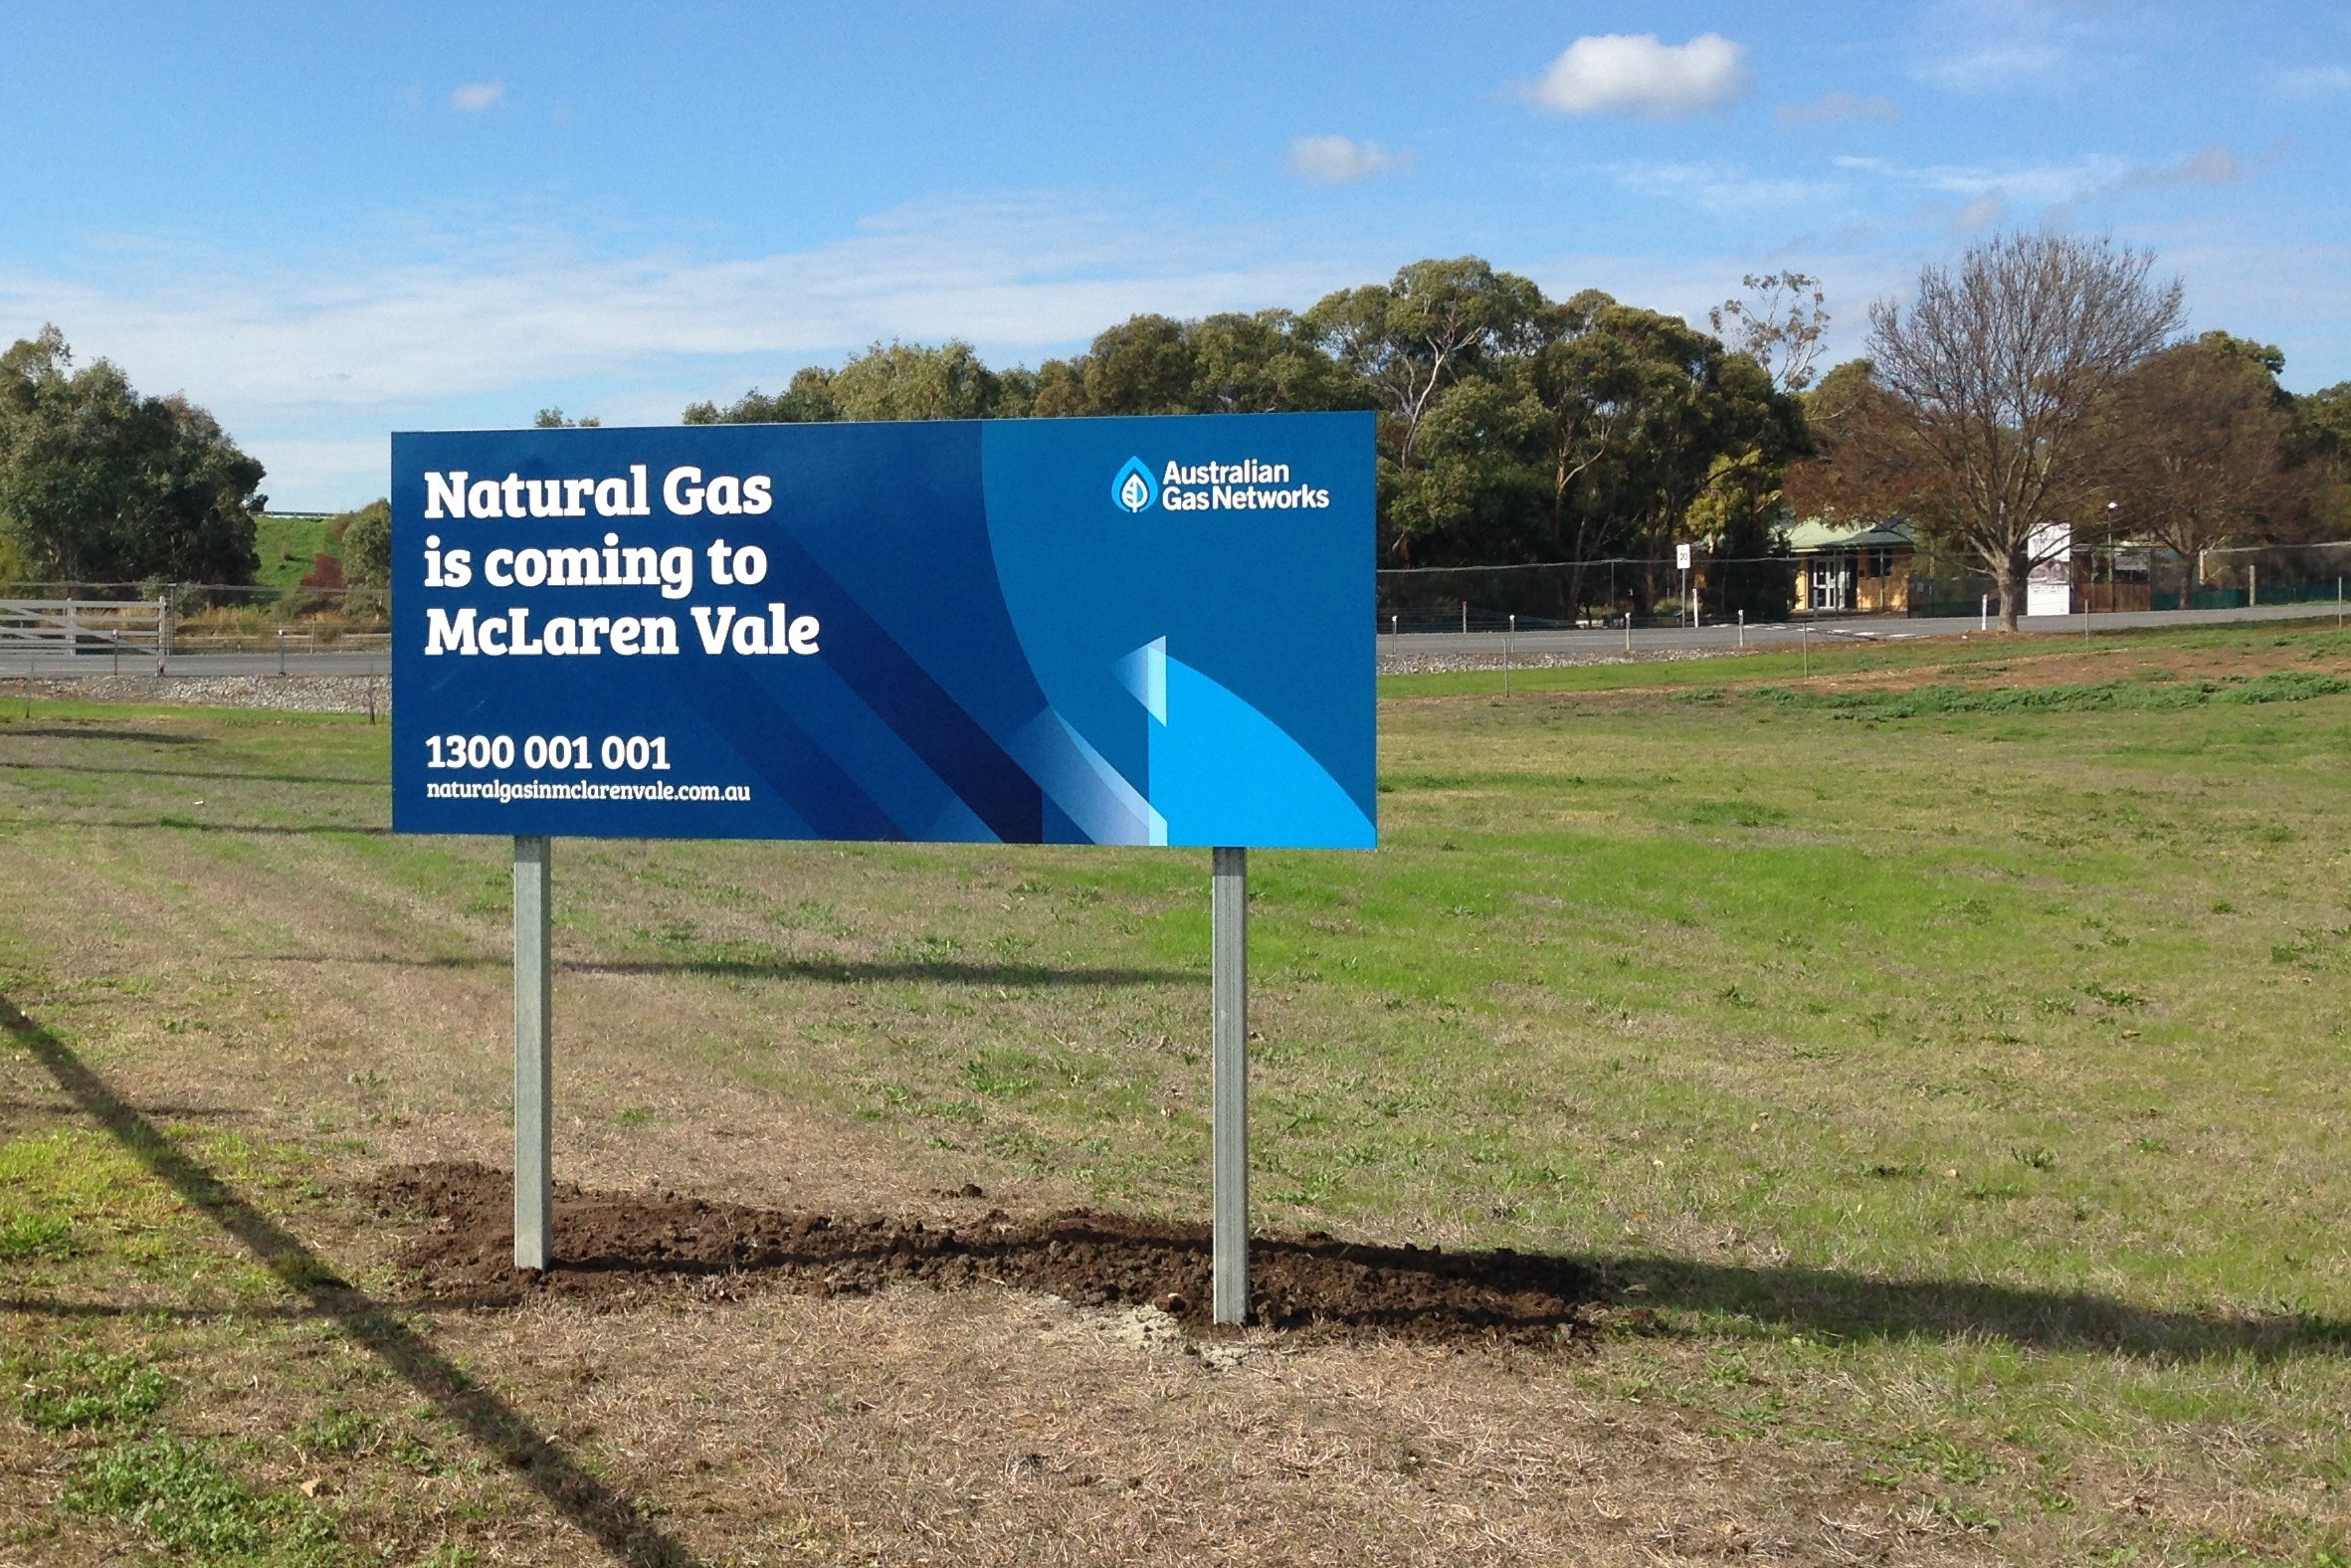 Natural gas in McLaren Vale